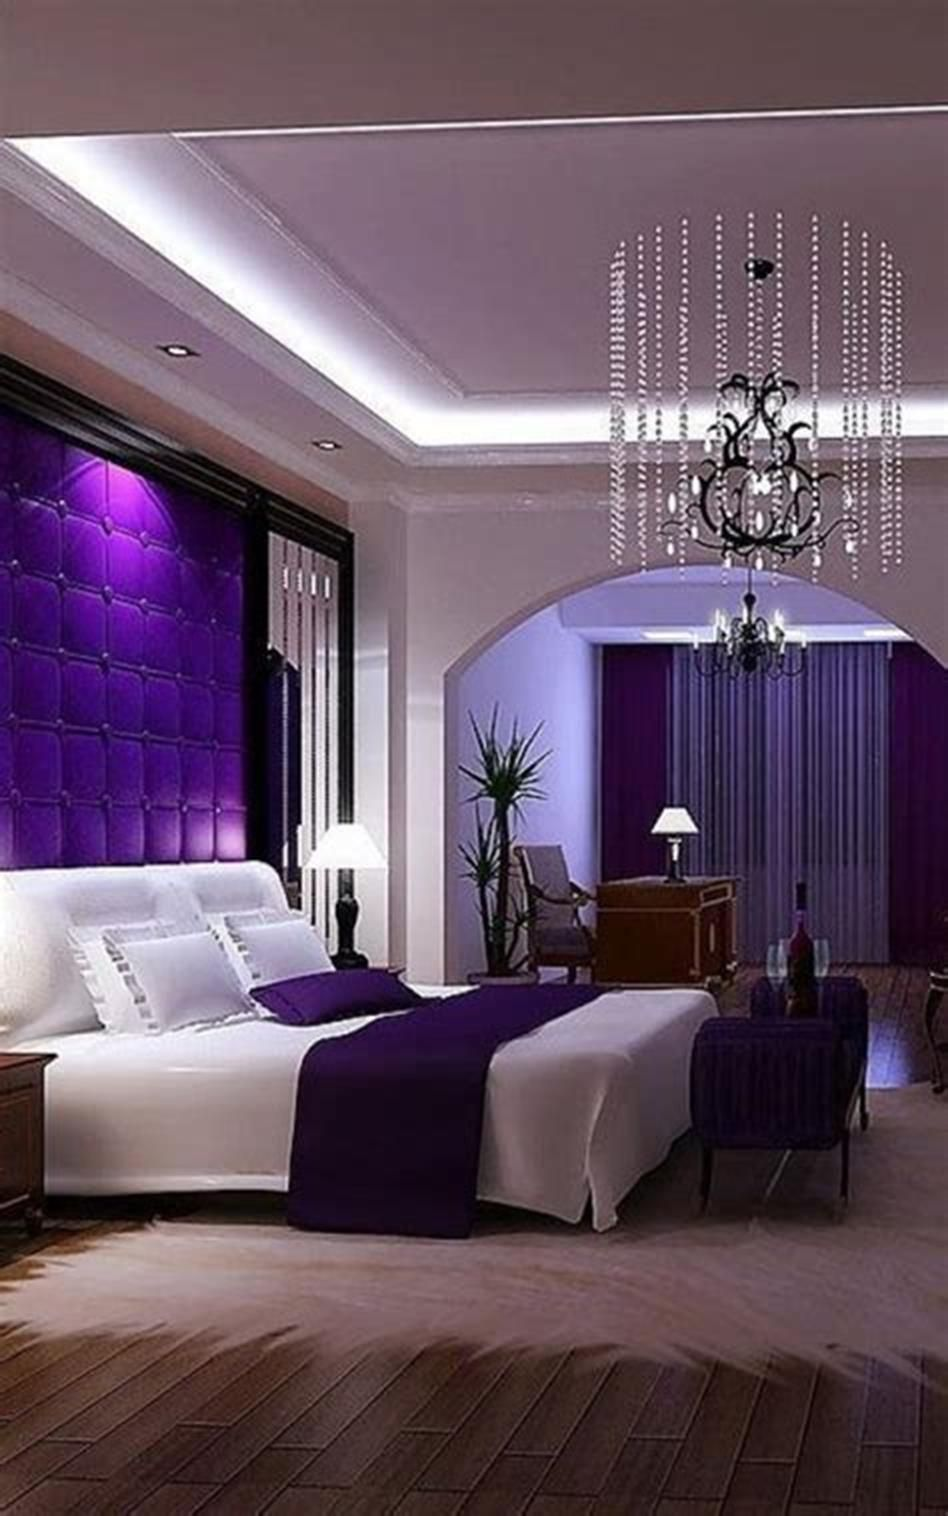 55 Amazing Small Master Bedroom Decorating Design Ideas On A Budget Craft Home Ideas Purple Master Bedroom Purple Bedroom Design Purple Bedrooms